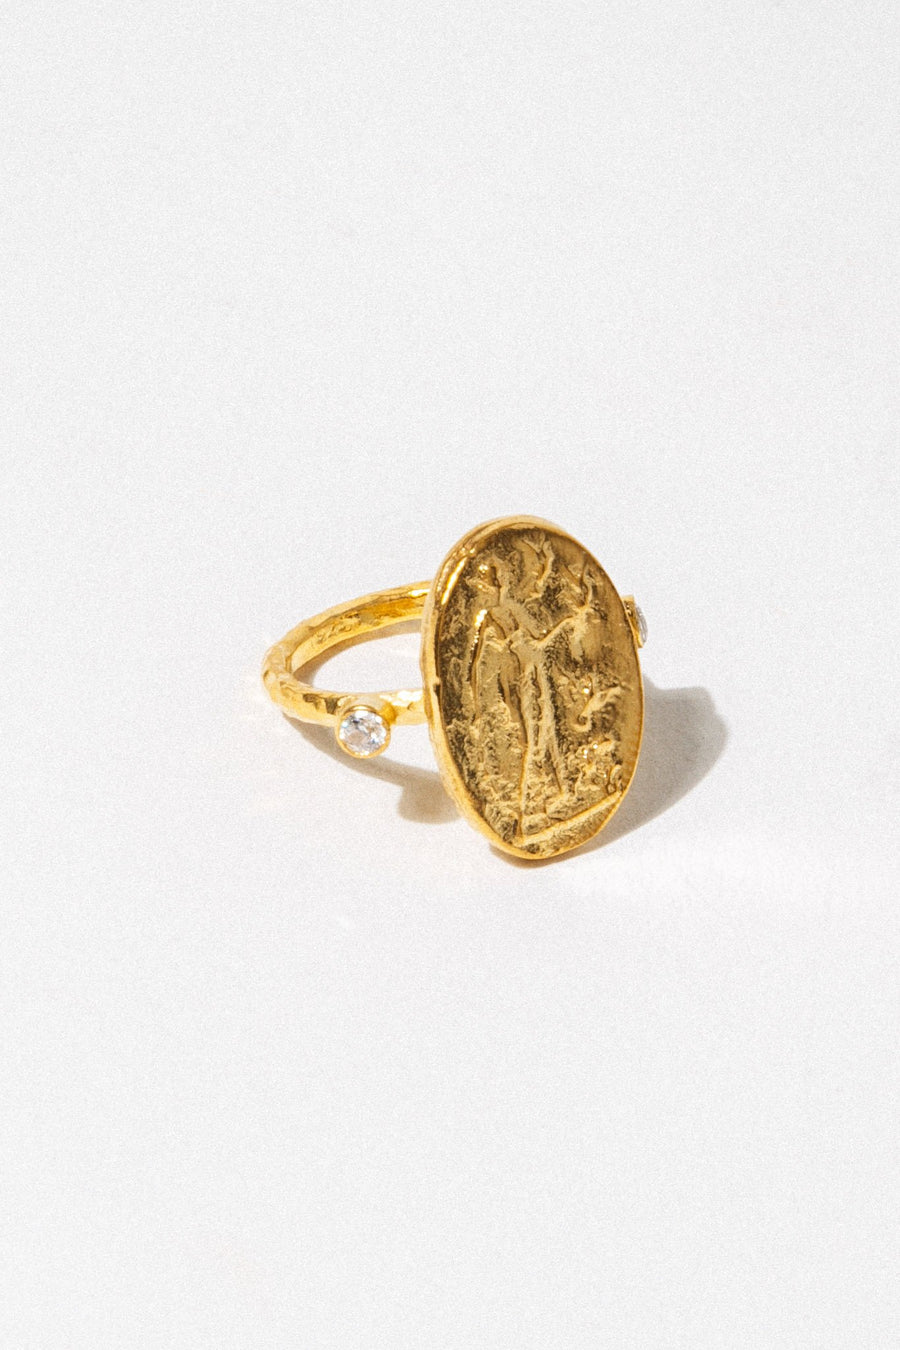 CAPRIXUS Jewelry Aphrodite Gold Ring